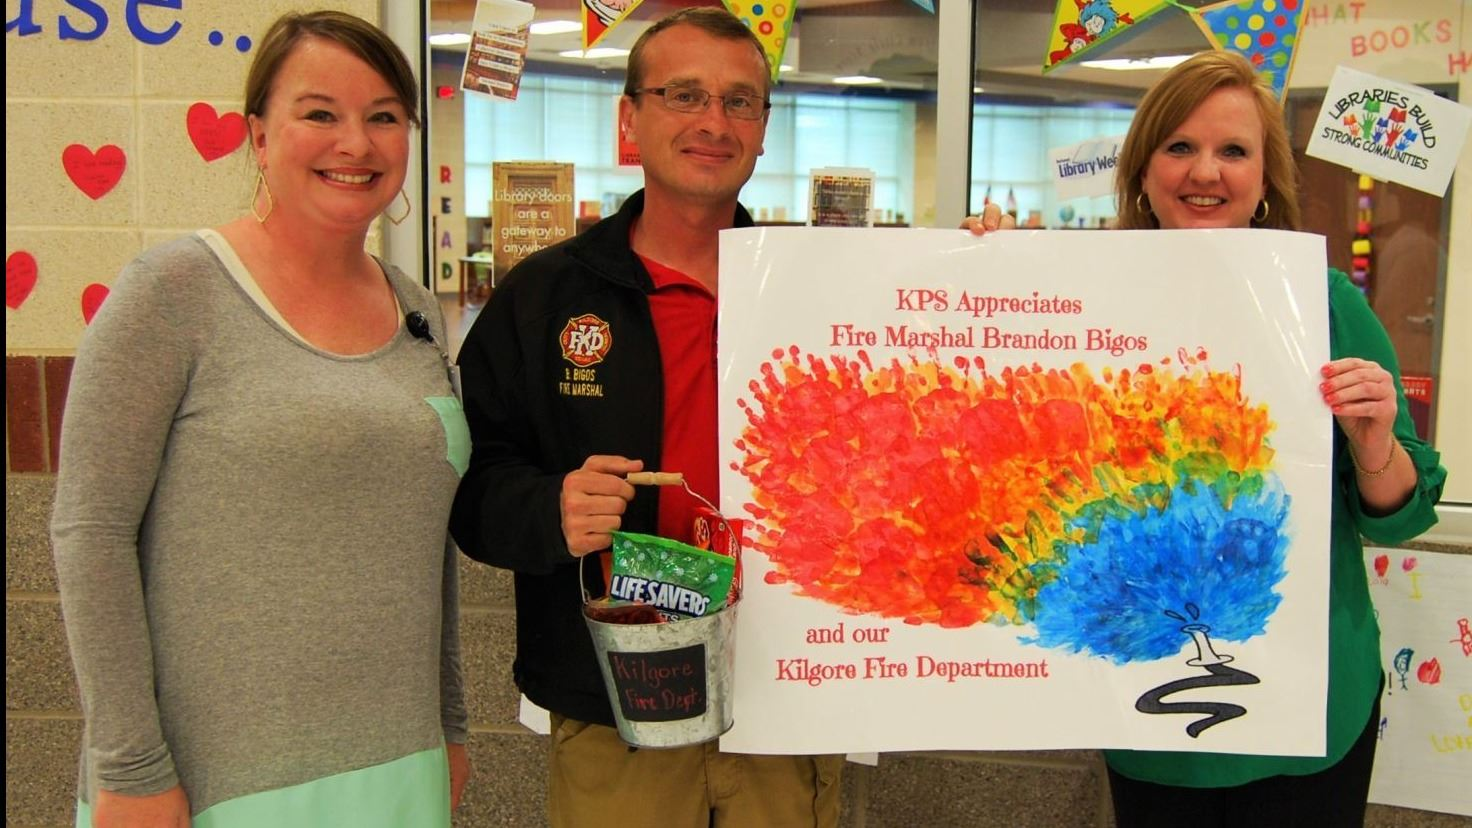 Brandon Bigos pictured with the Kilgore Primary School librarian and assistant principal.